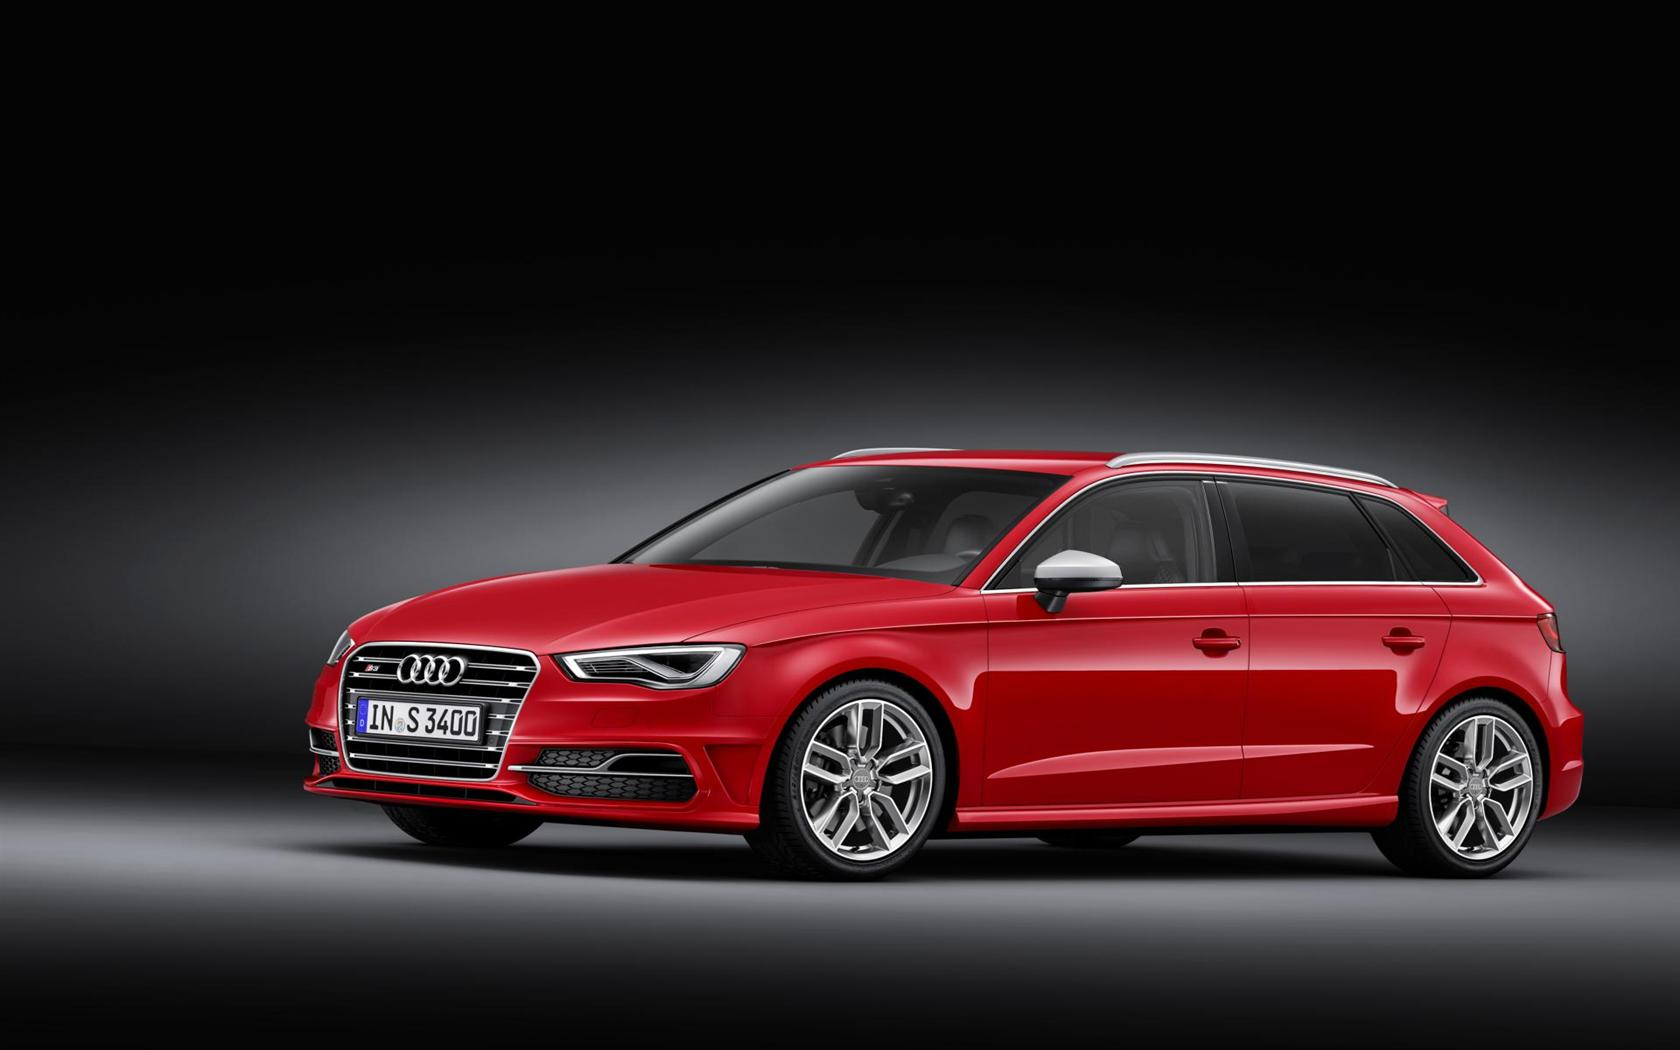 2013 audi s3 sportback image. Black Bedroom Furniture Sets. Home Design Ideas